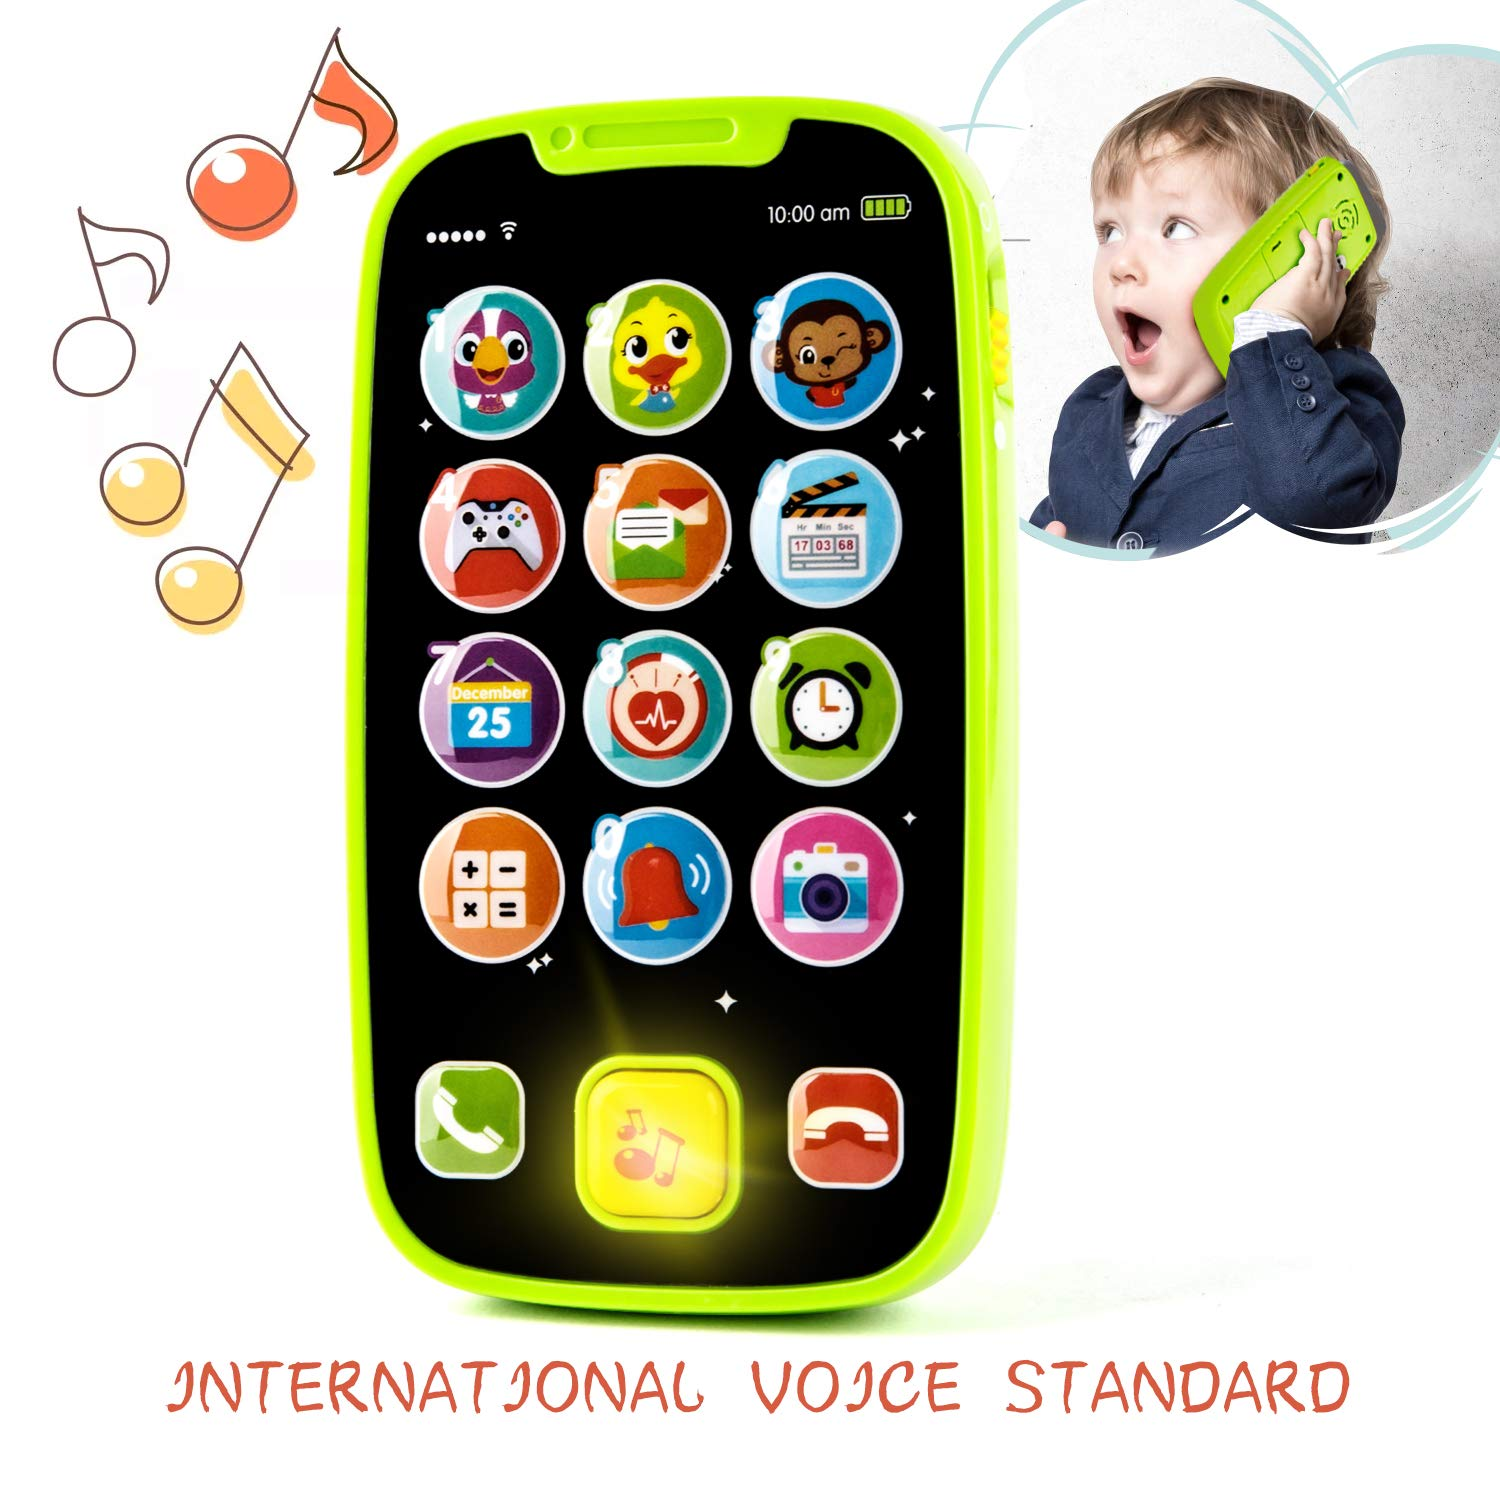 KidPal Baby Toy Phone for 1 2 Year Old with Light, Music| My First Smartphone Toy for Baby 8M 12M 16M 24M+ Toddler Cell Phone | Educational Call & Chat Learning Play Phone Toy for Role-Play Fun by KidPal